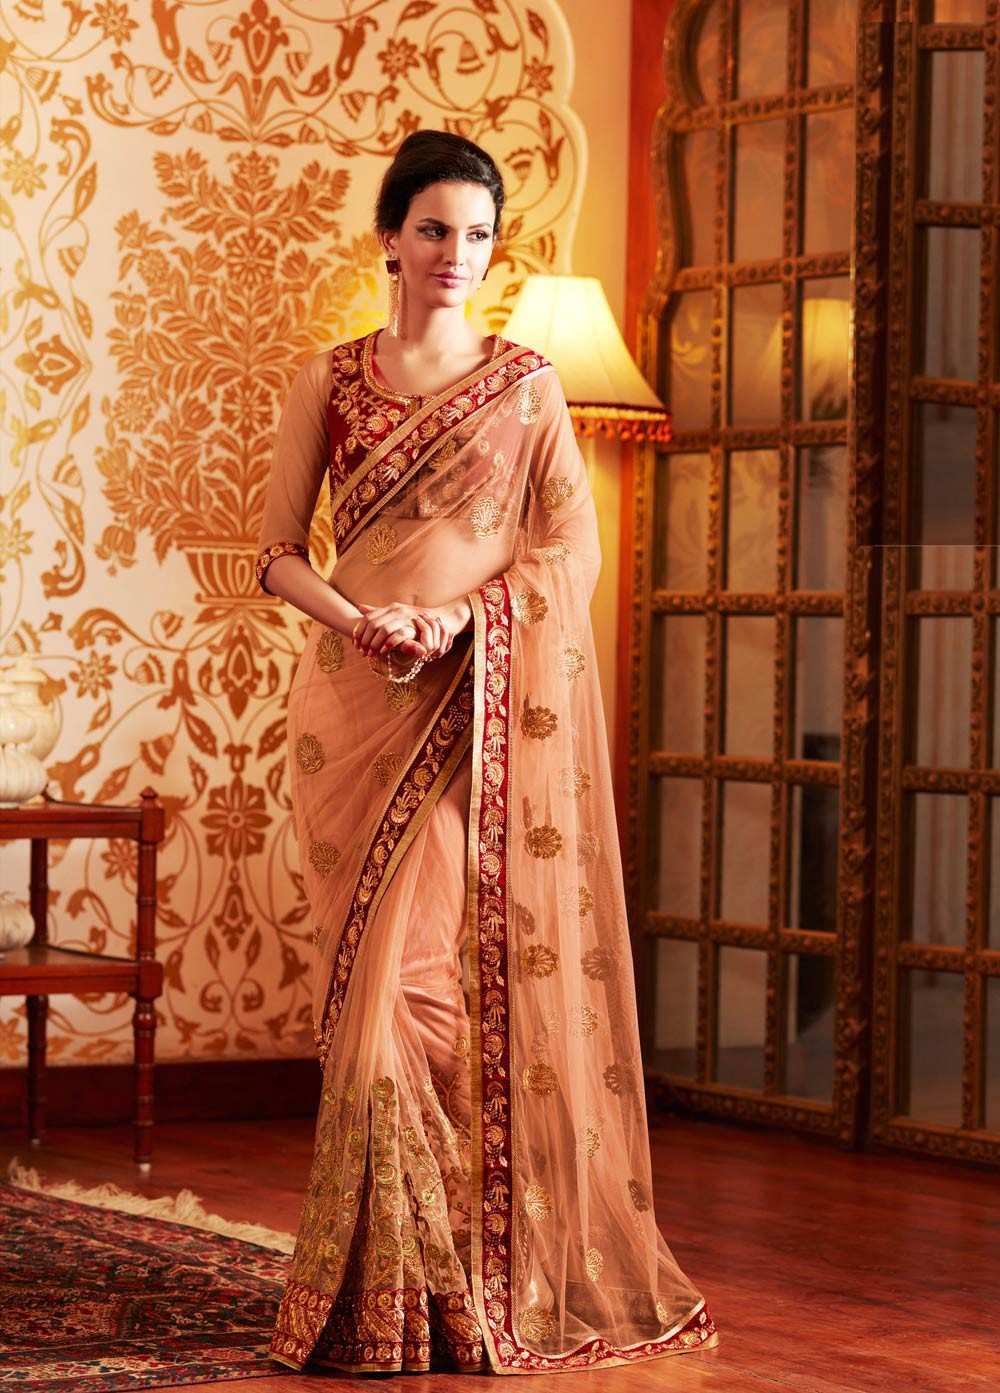 b443971a30 Today, people are choosing traditional Indian Wedding Sarees for their  child wedding celebrations. The wedding could be really overwhelming about  the type ...